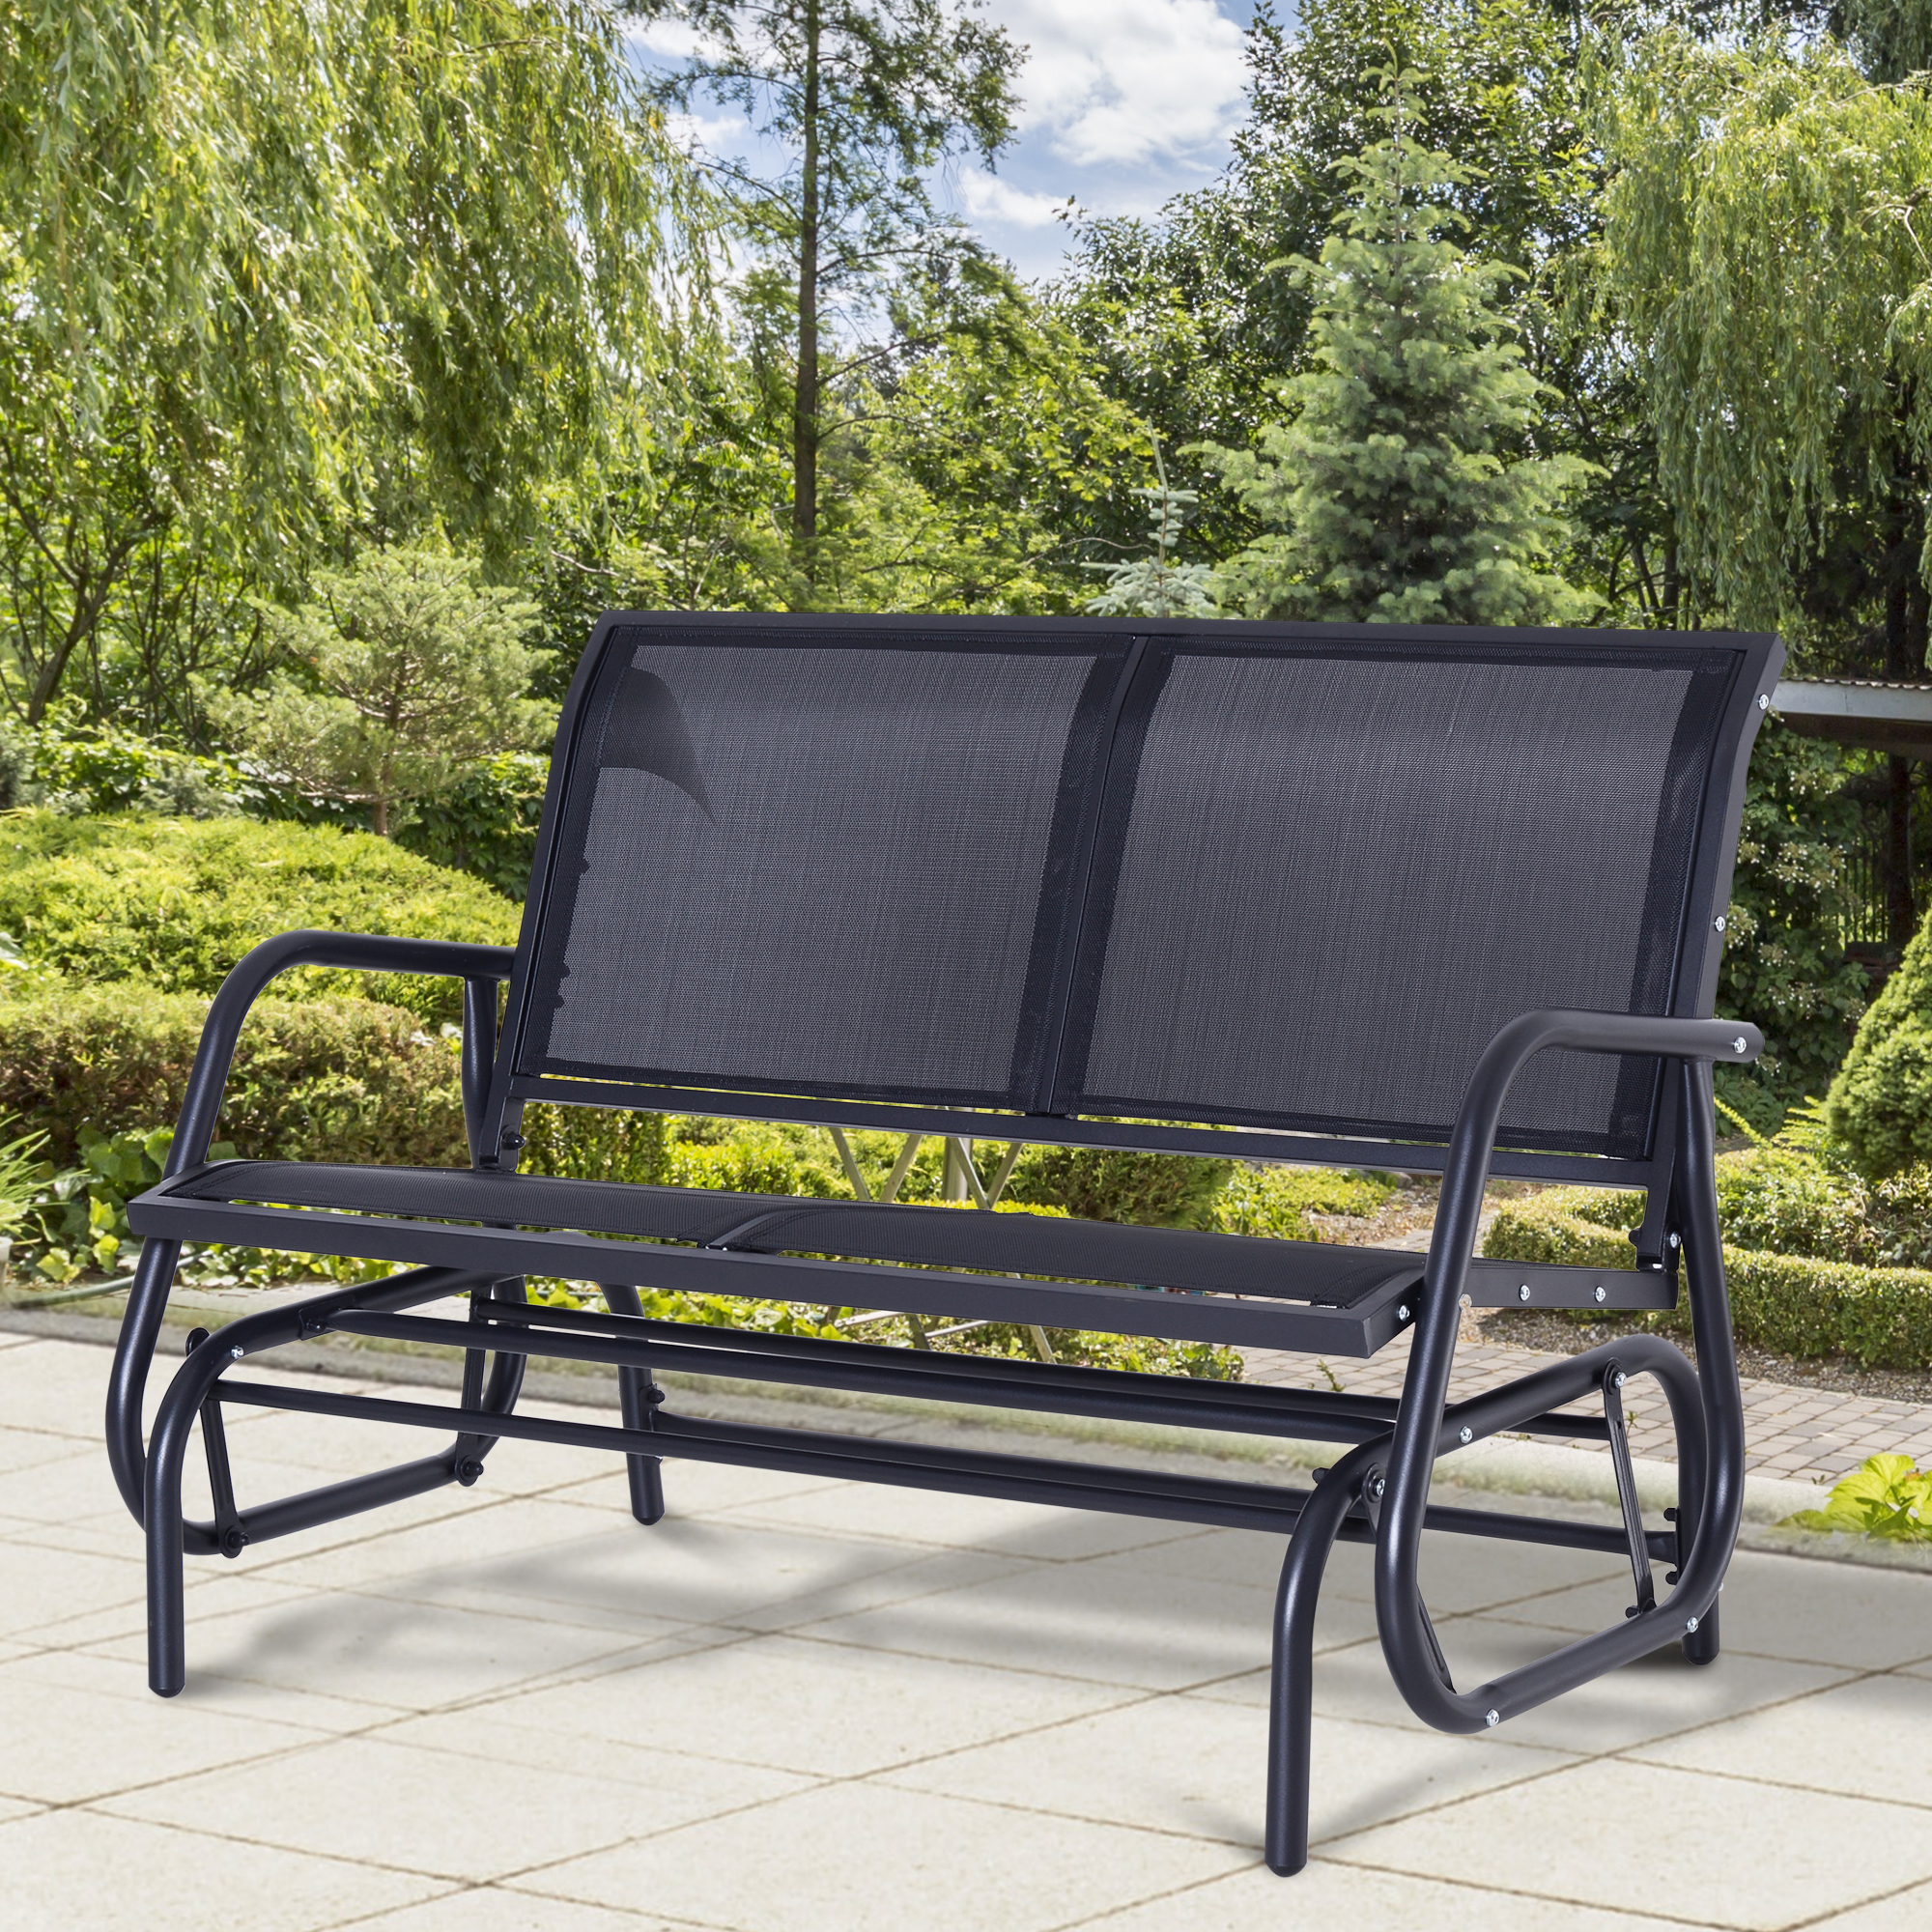 Well Known Details About Outsunny Patio Double 2 Person Glider Bench Rocker Porch Love Seat Swing Chair With Regard To Outdoor Steel Patio Swing Glider Benches (View 15 of 25)